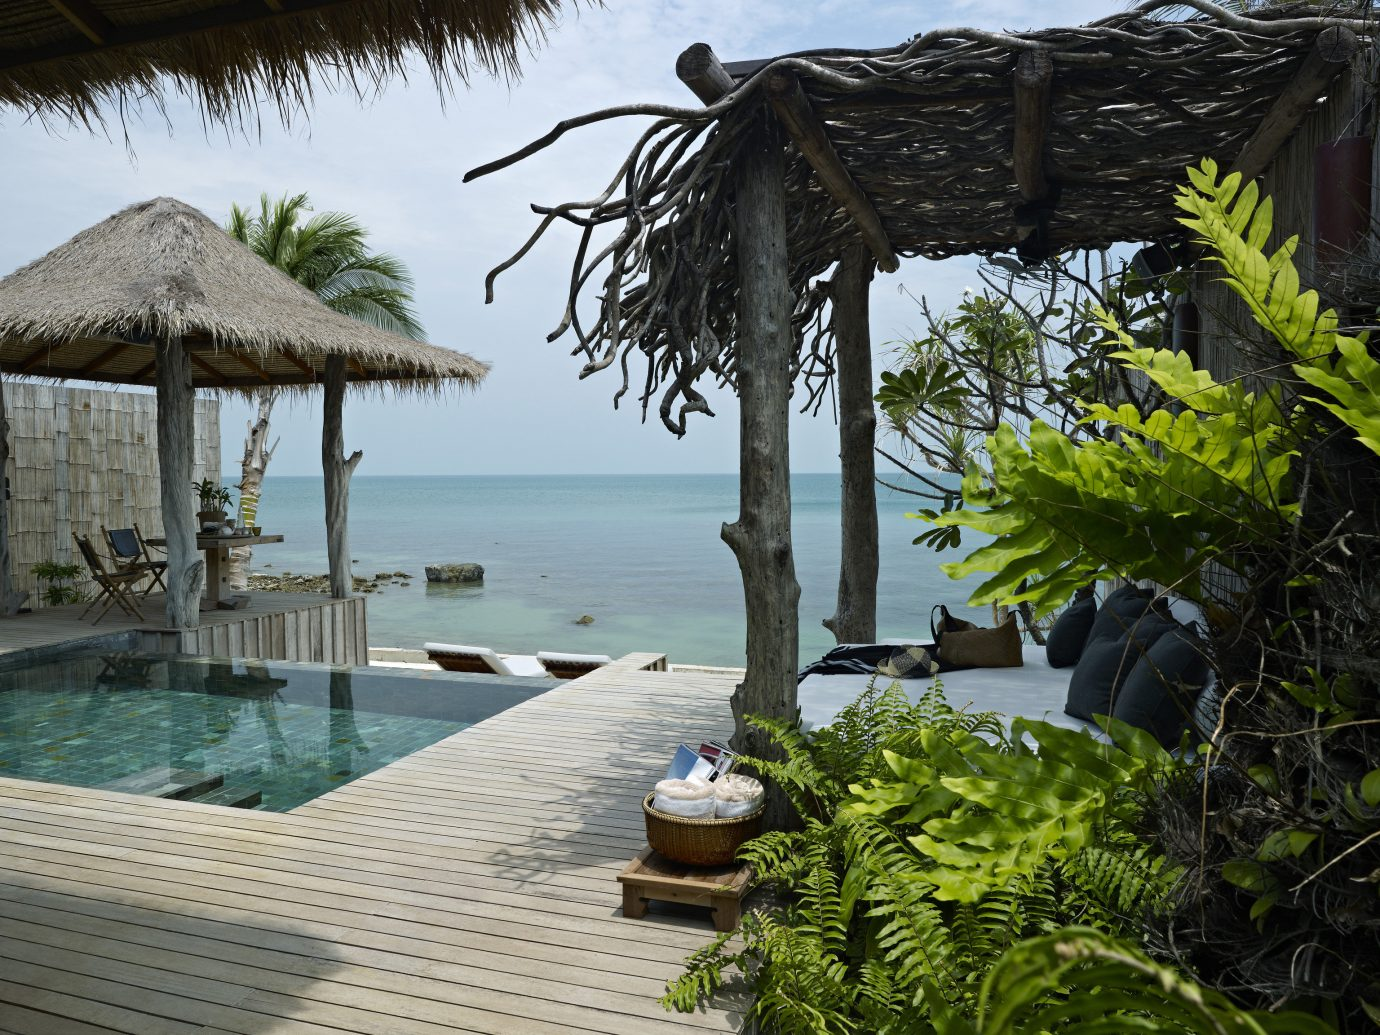 All-Inclusive Resorts Beach Hotels tree outdoor water Resort vacation swimming pool estate arecales tropics Villa backyard Jungle shade Garden surrounded